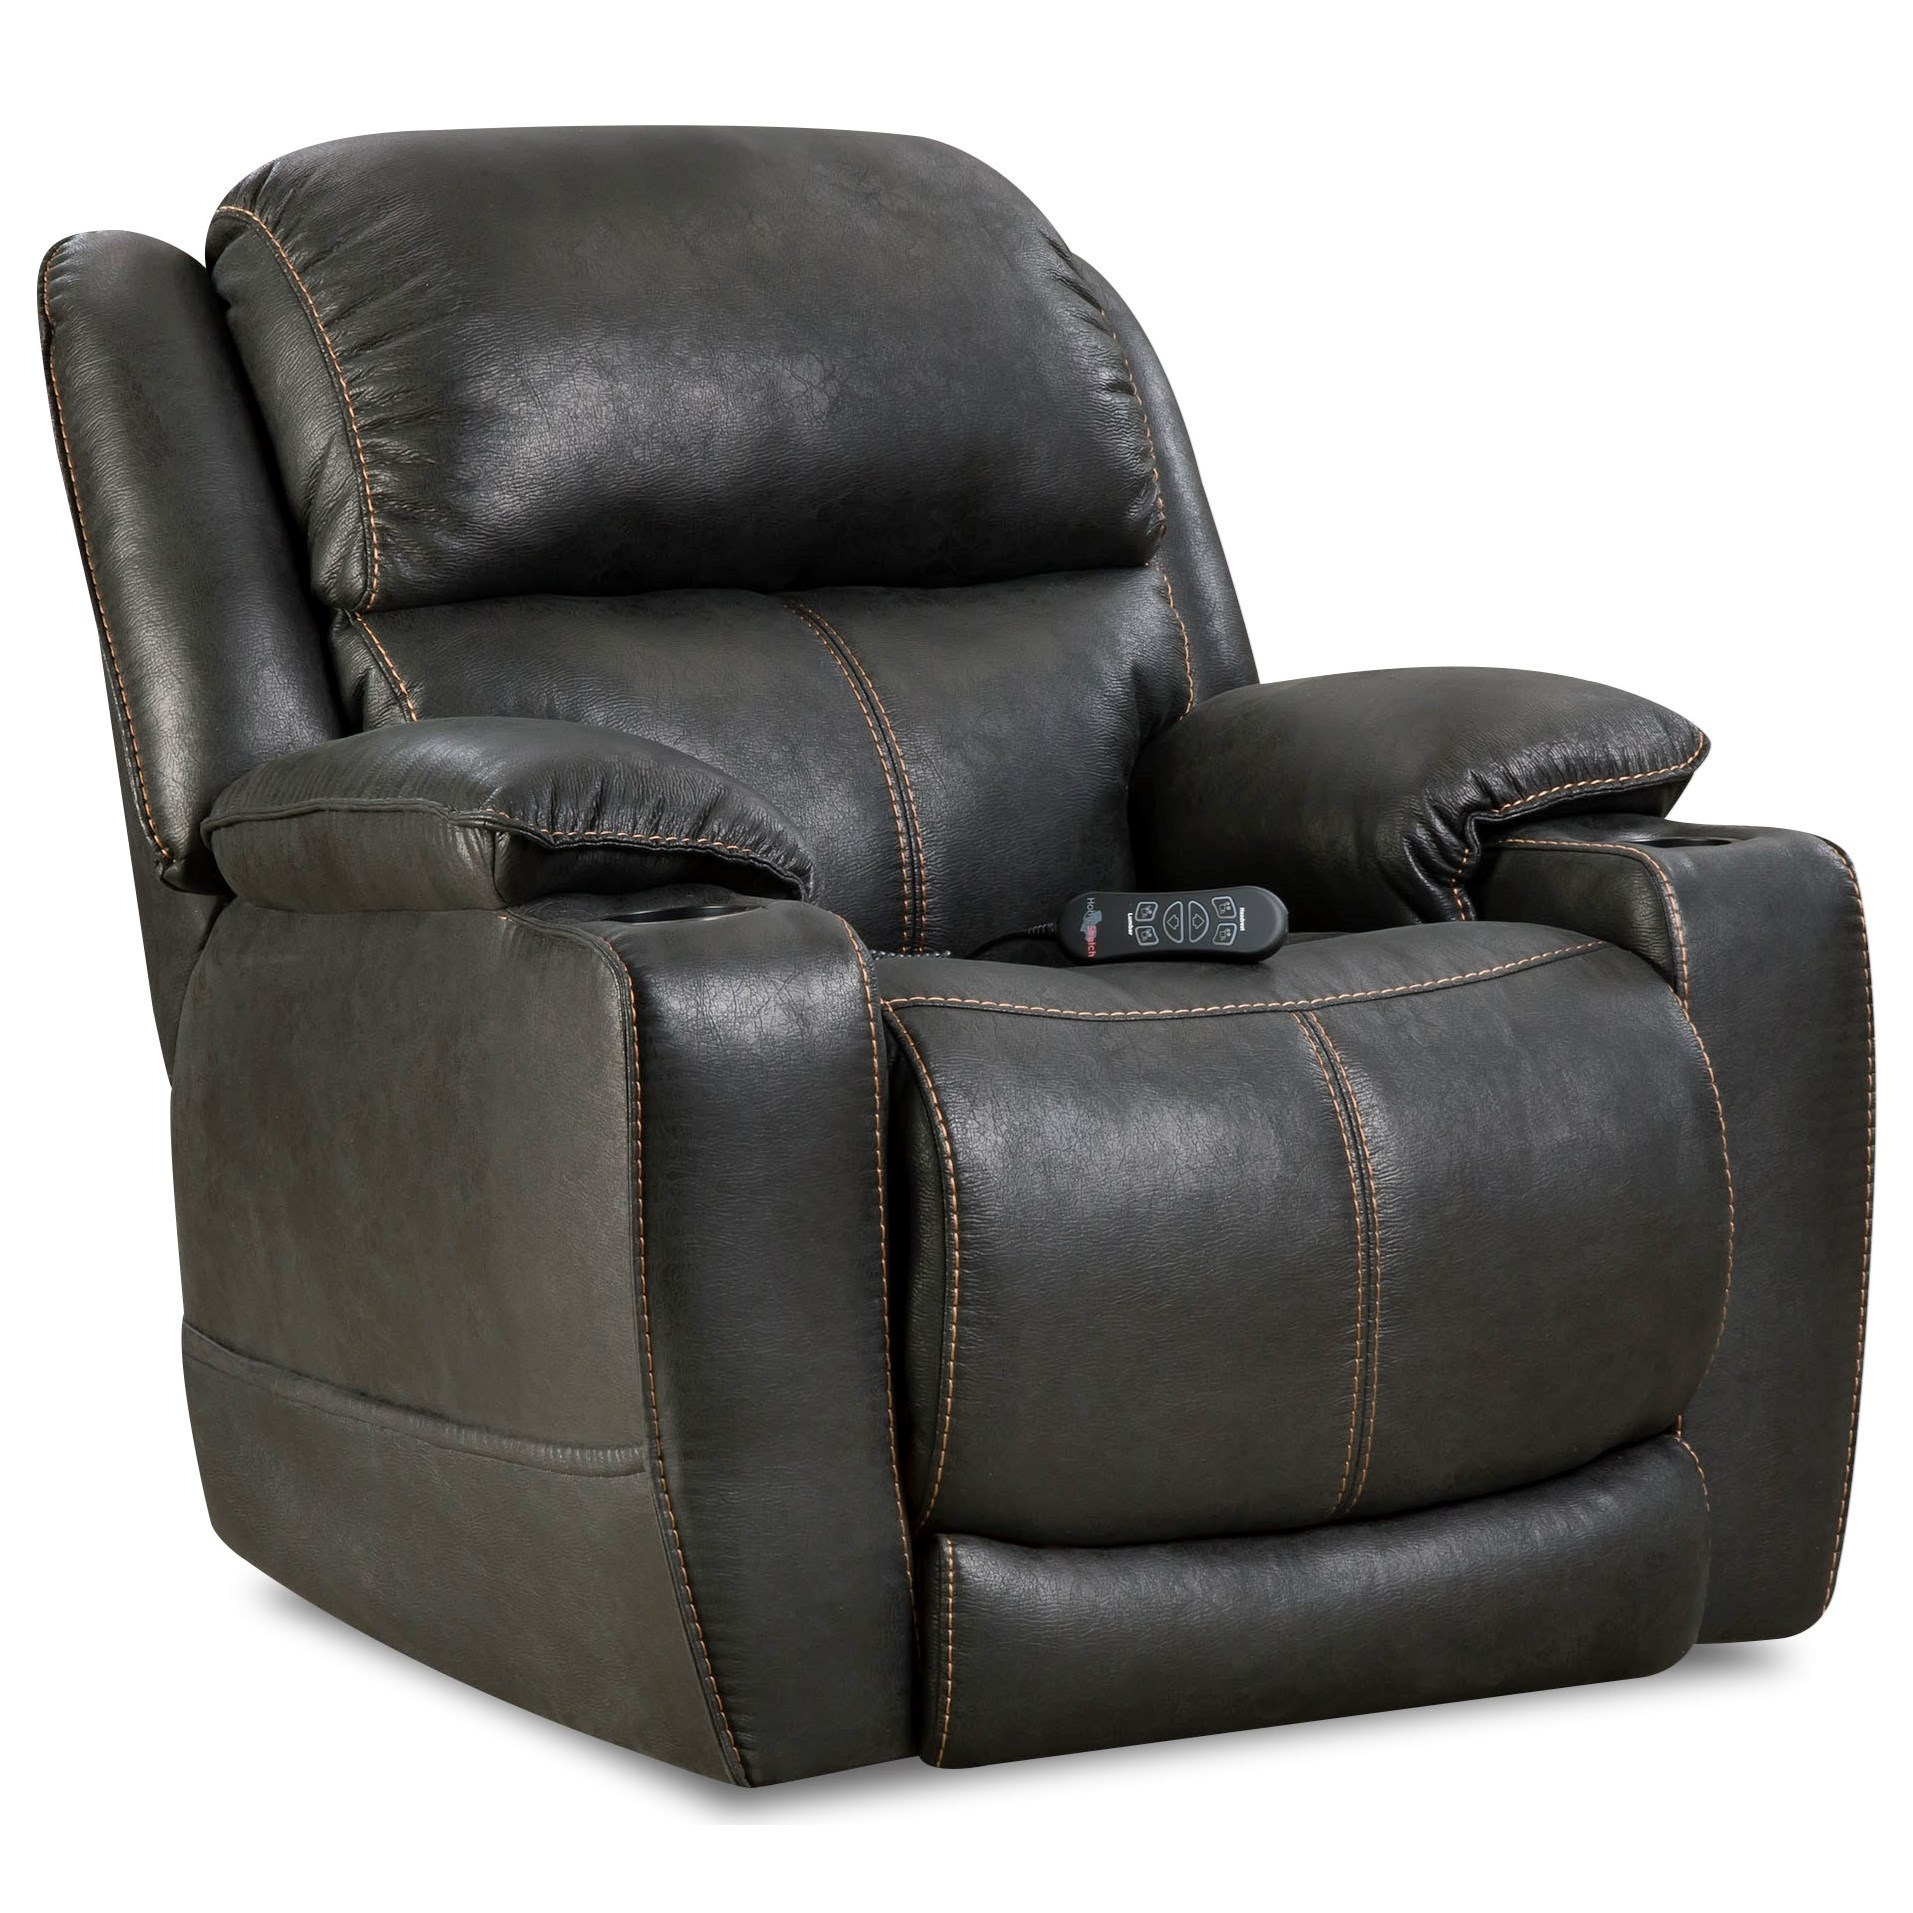 theater chairs with cup holders wooden lounge chair homestretch starship casual home recliner